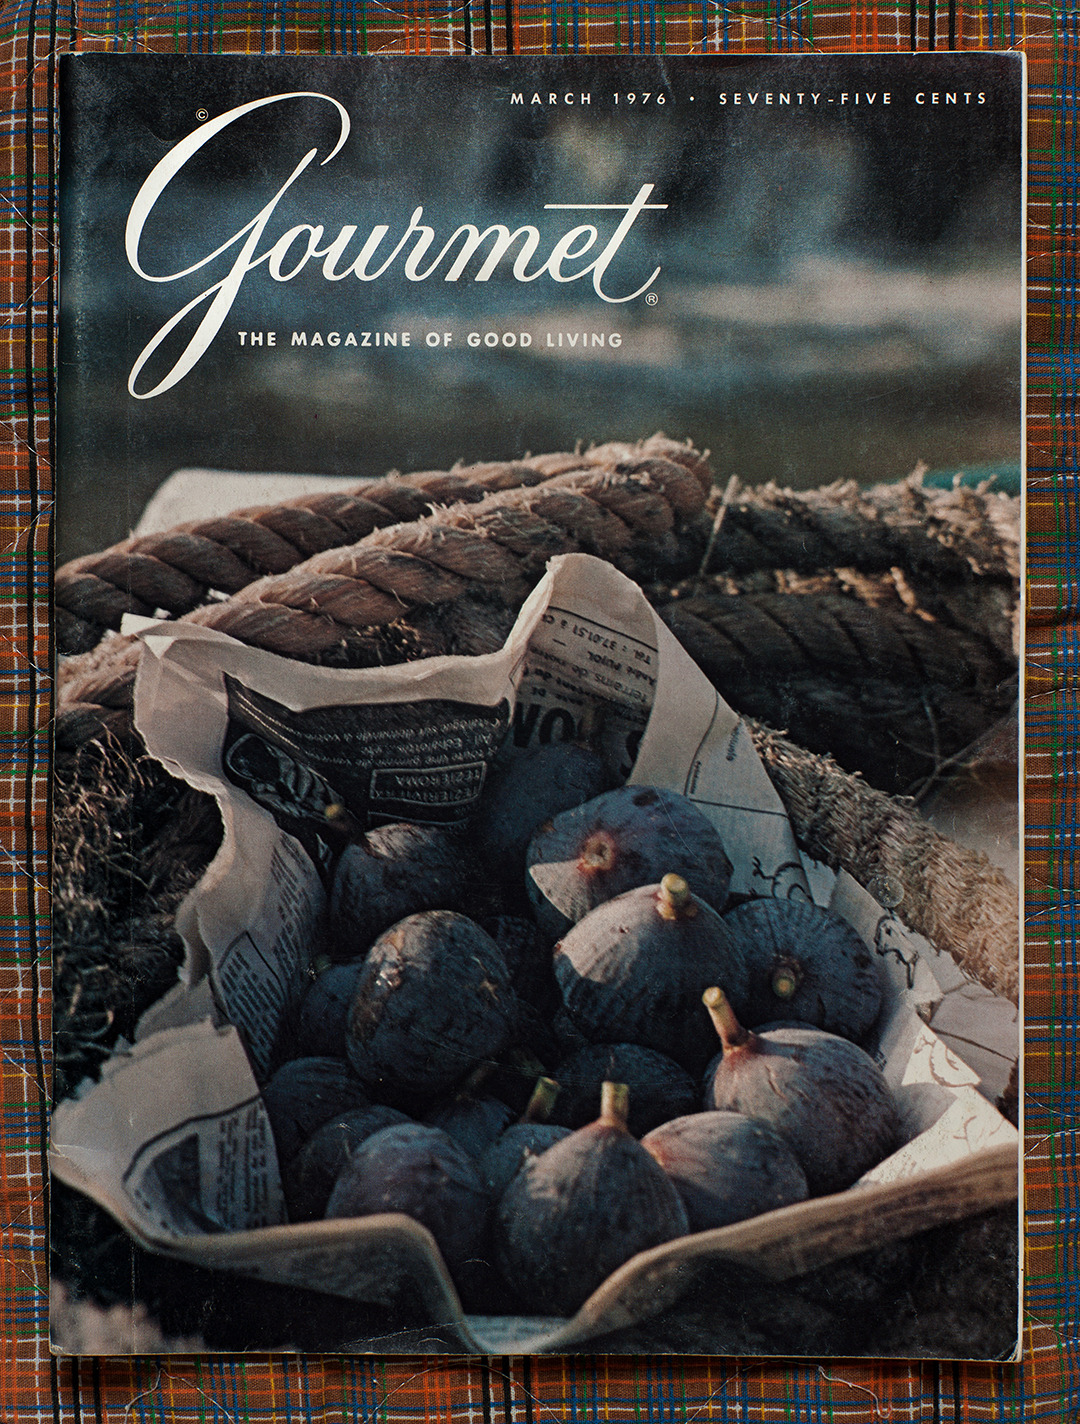 Gourmet: March 1976